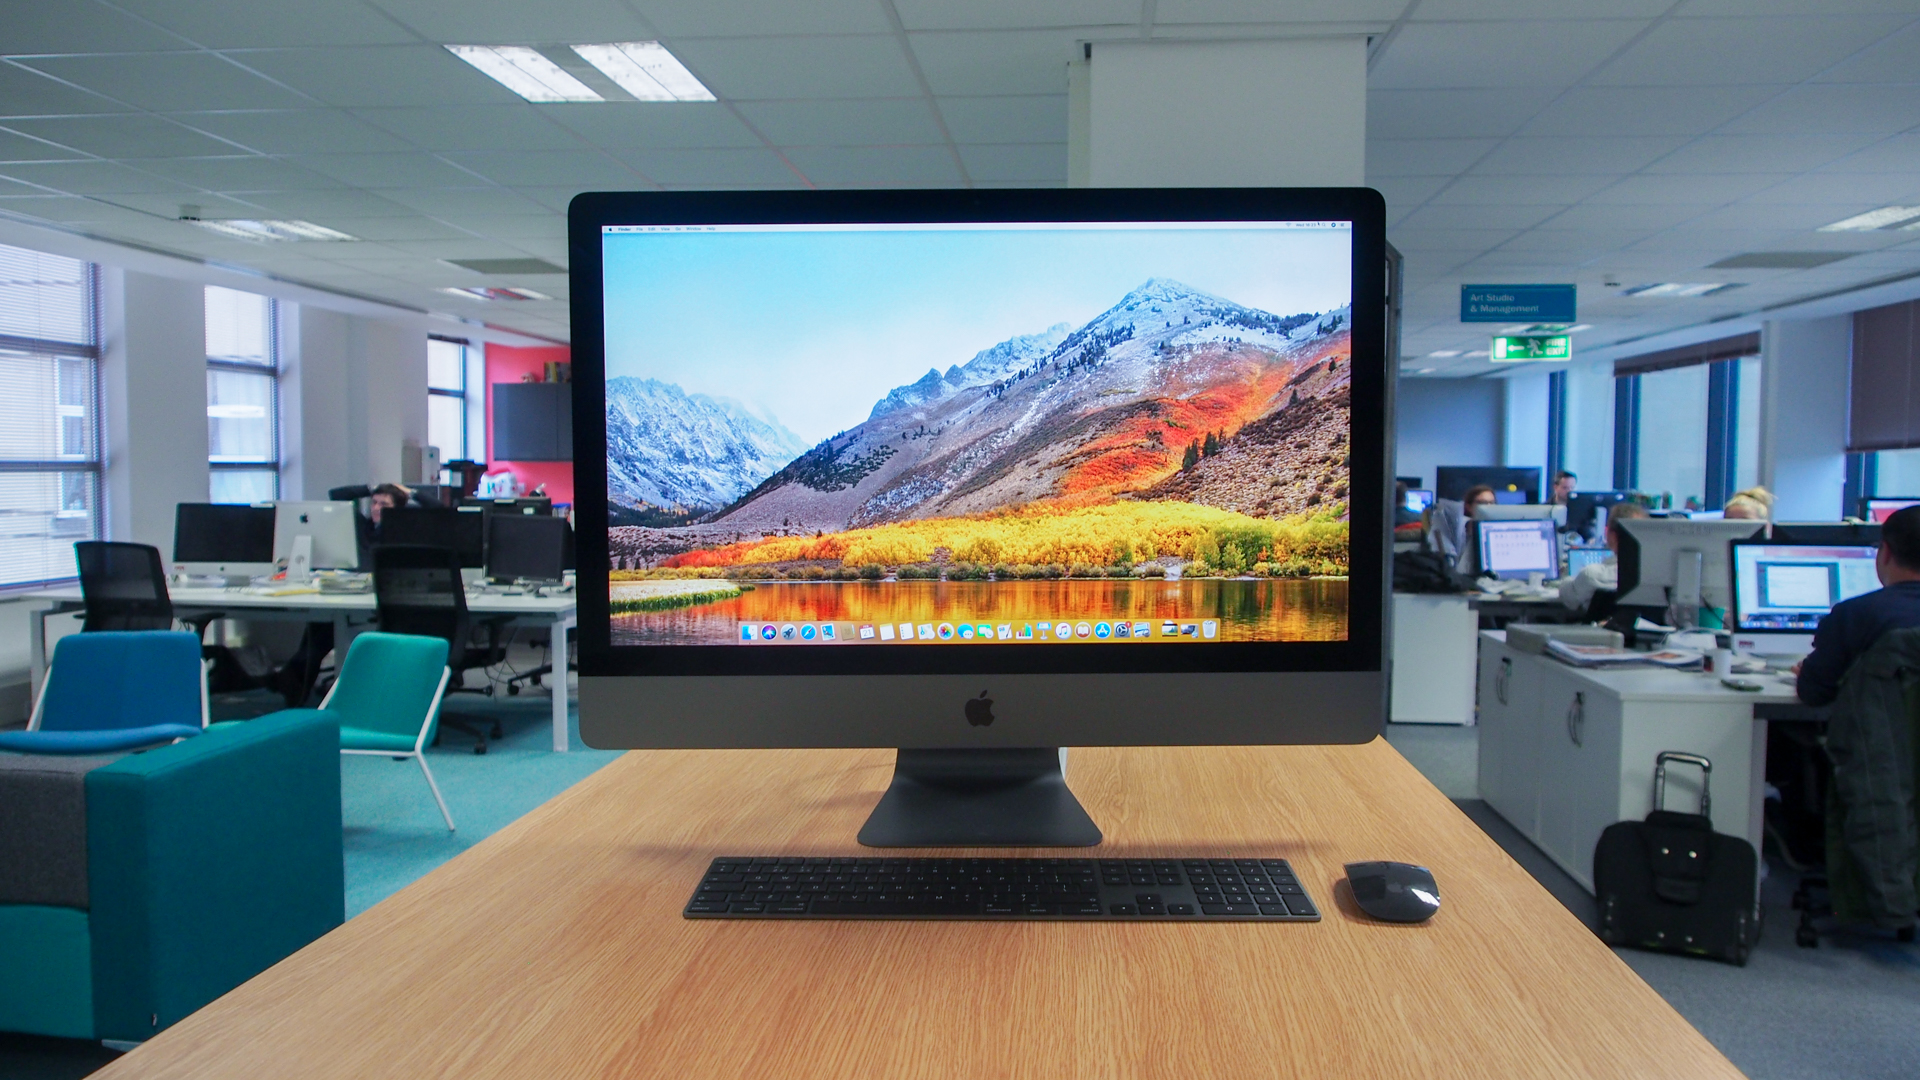 Apple iMac Pro all-in-one computer